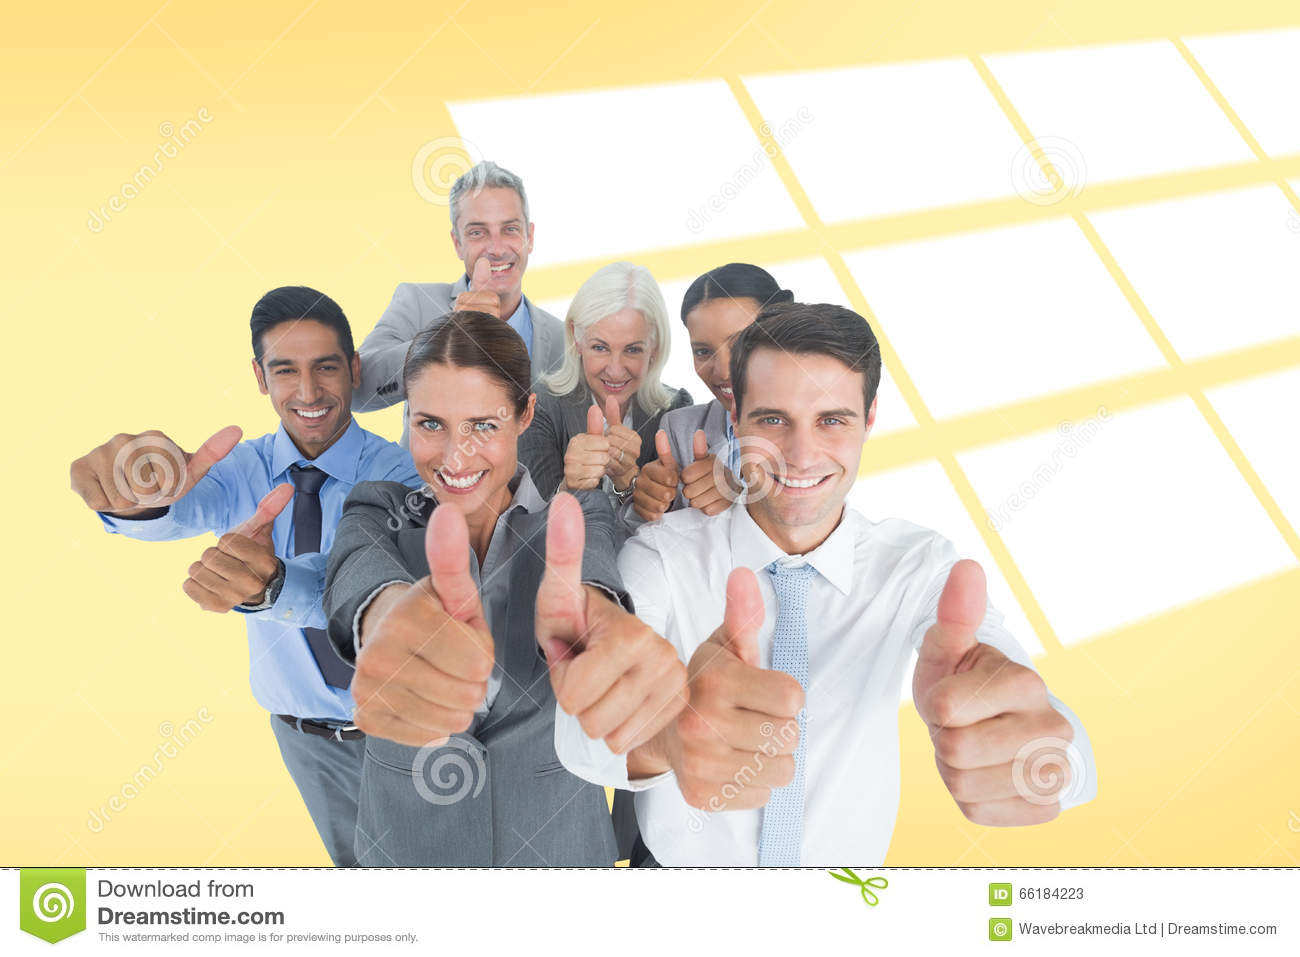 Happy people thumbs up